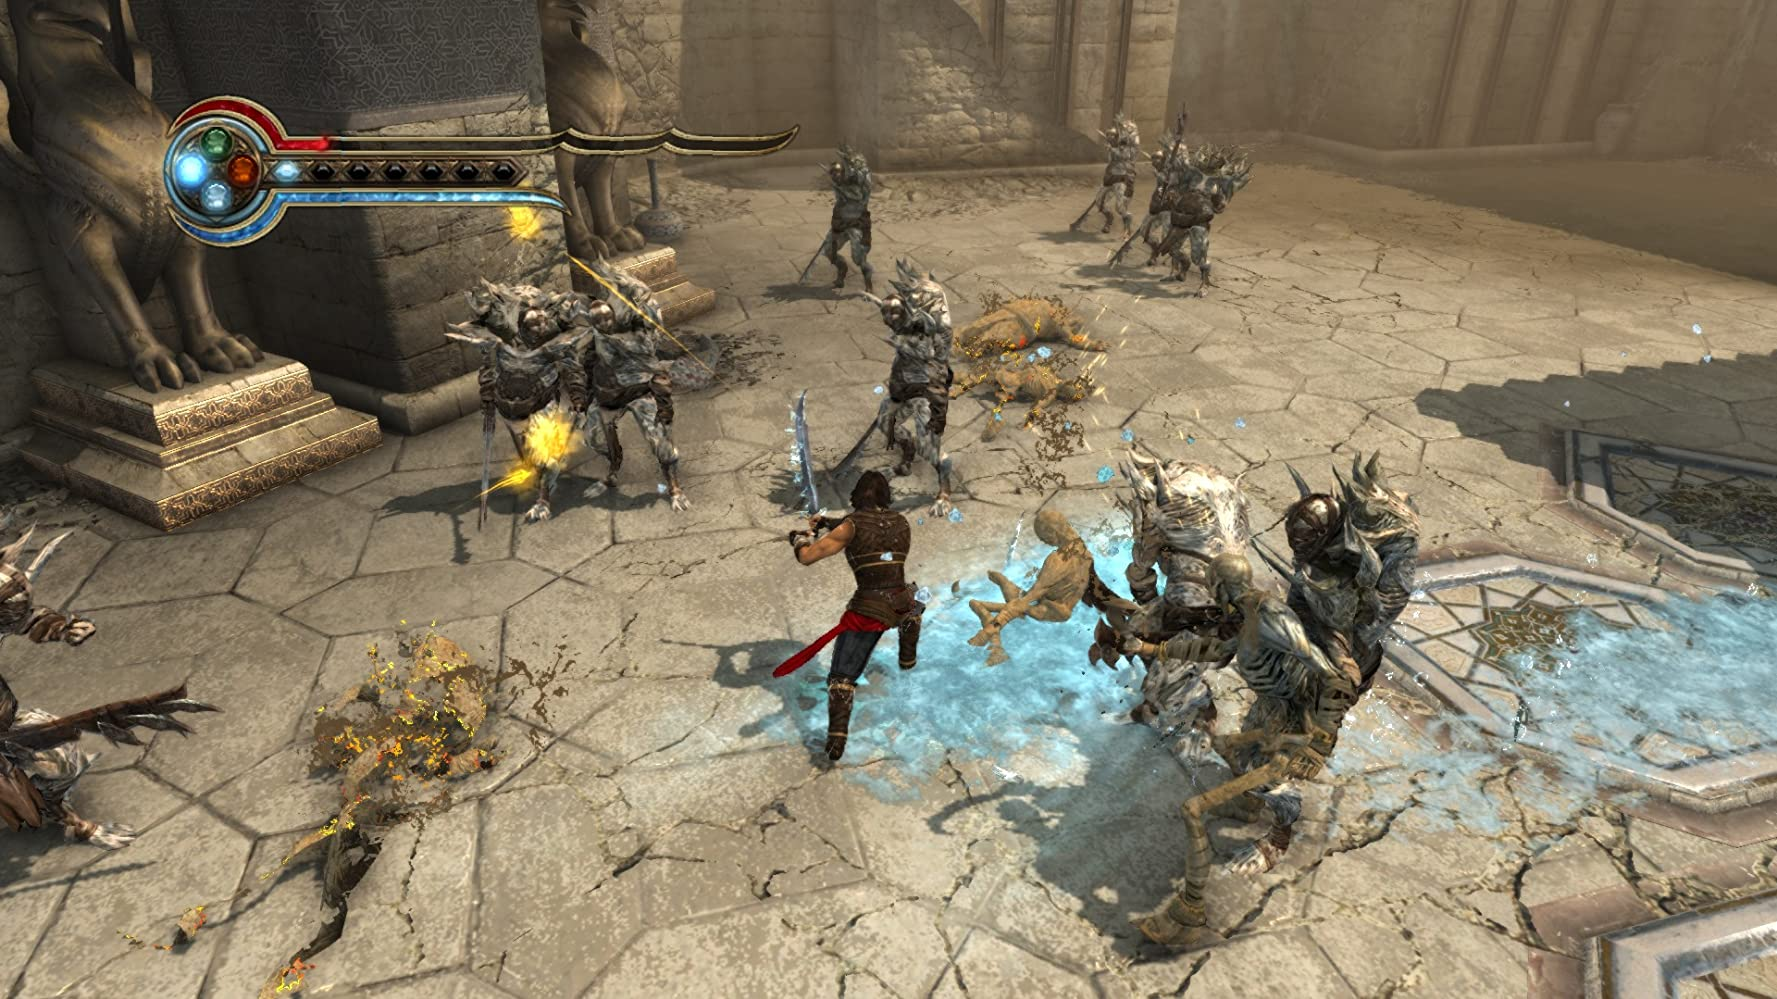 صورة من داخل prince of Persia: The Forgotten Sands""